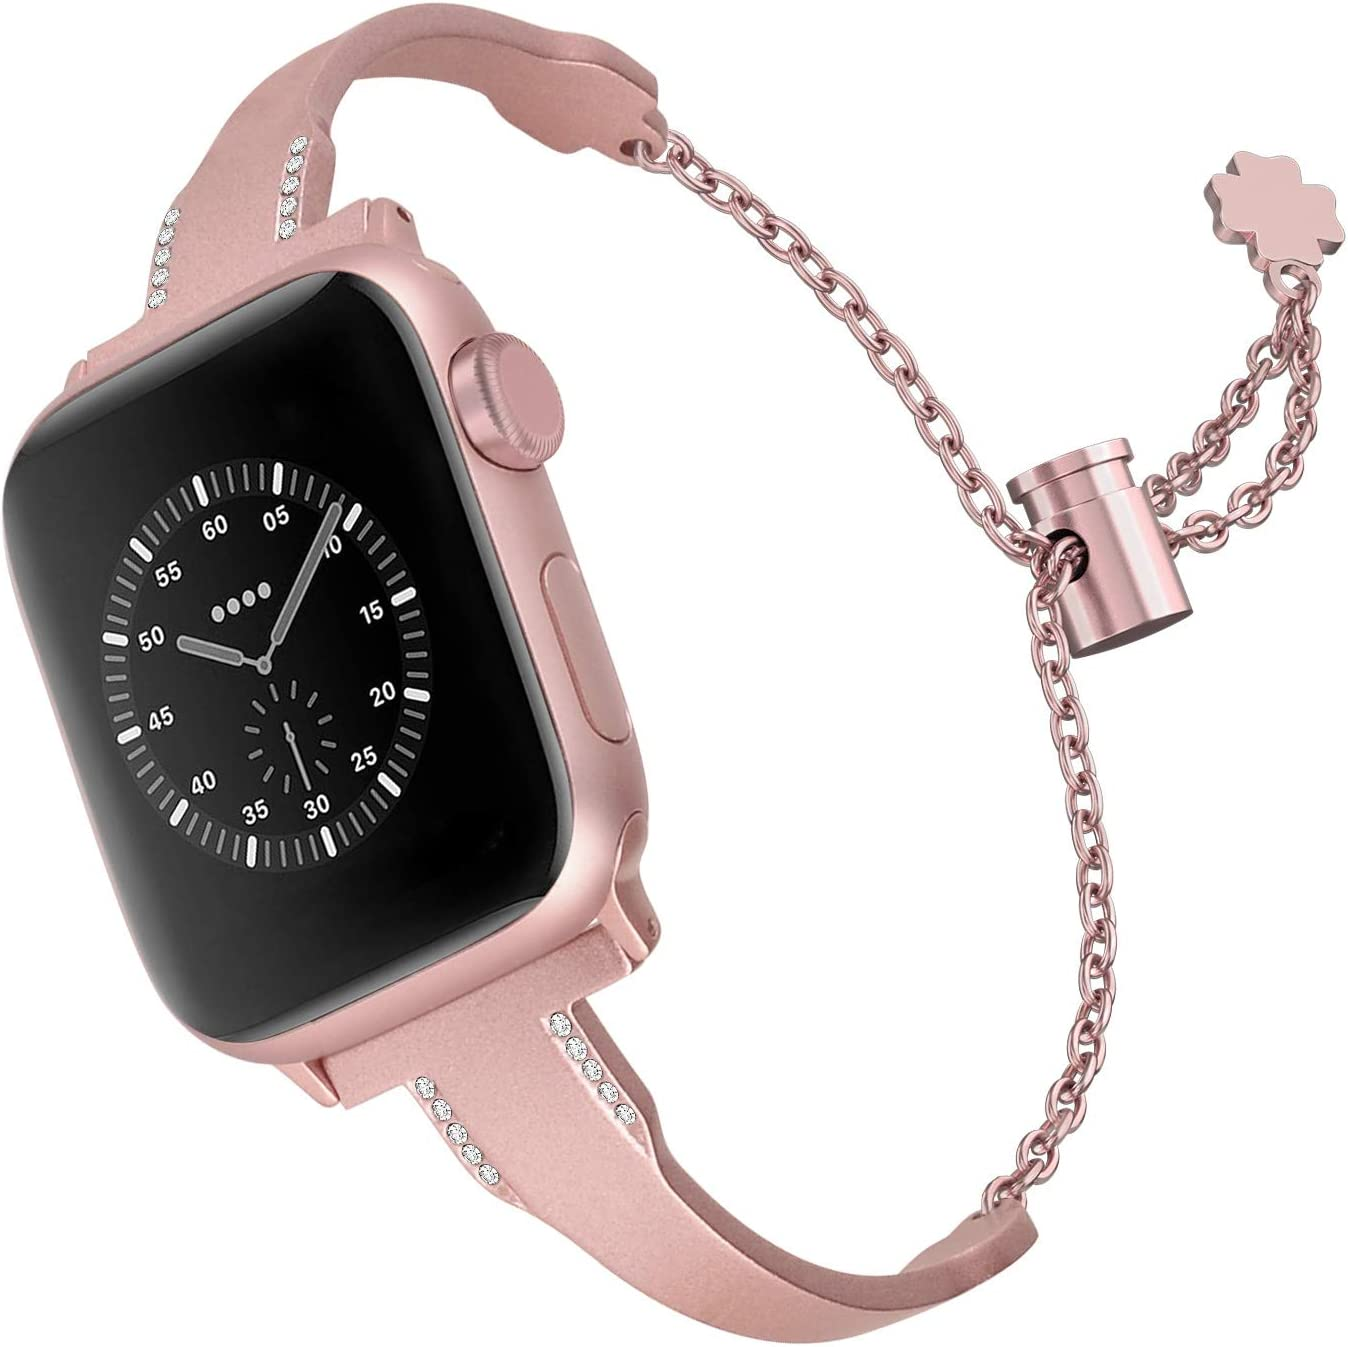 Aizilasa Metal Band Compatible for Apple Watch Band 40mm 44mm 38mm 42mm, Stainless Steel iWatch Wristband Strap Cuff Bangle Bracelet for Women Men (Rose Gold (Pink), 42mm/44mm)